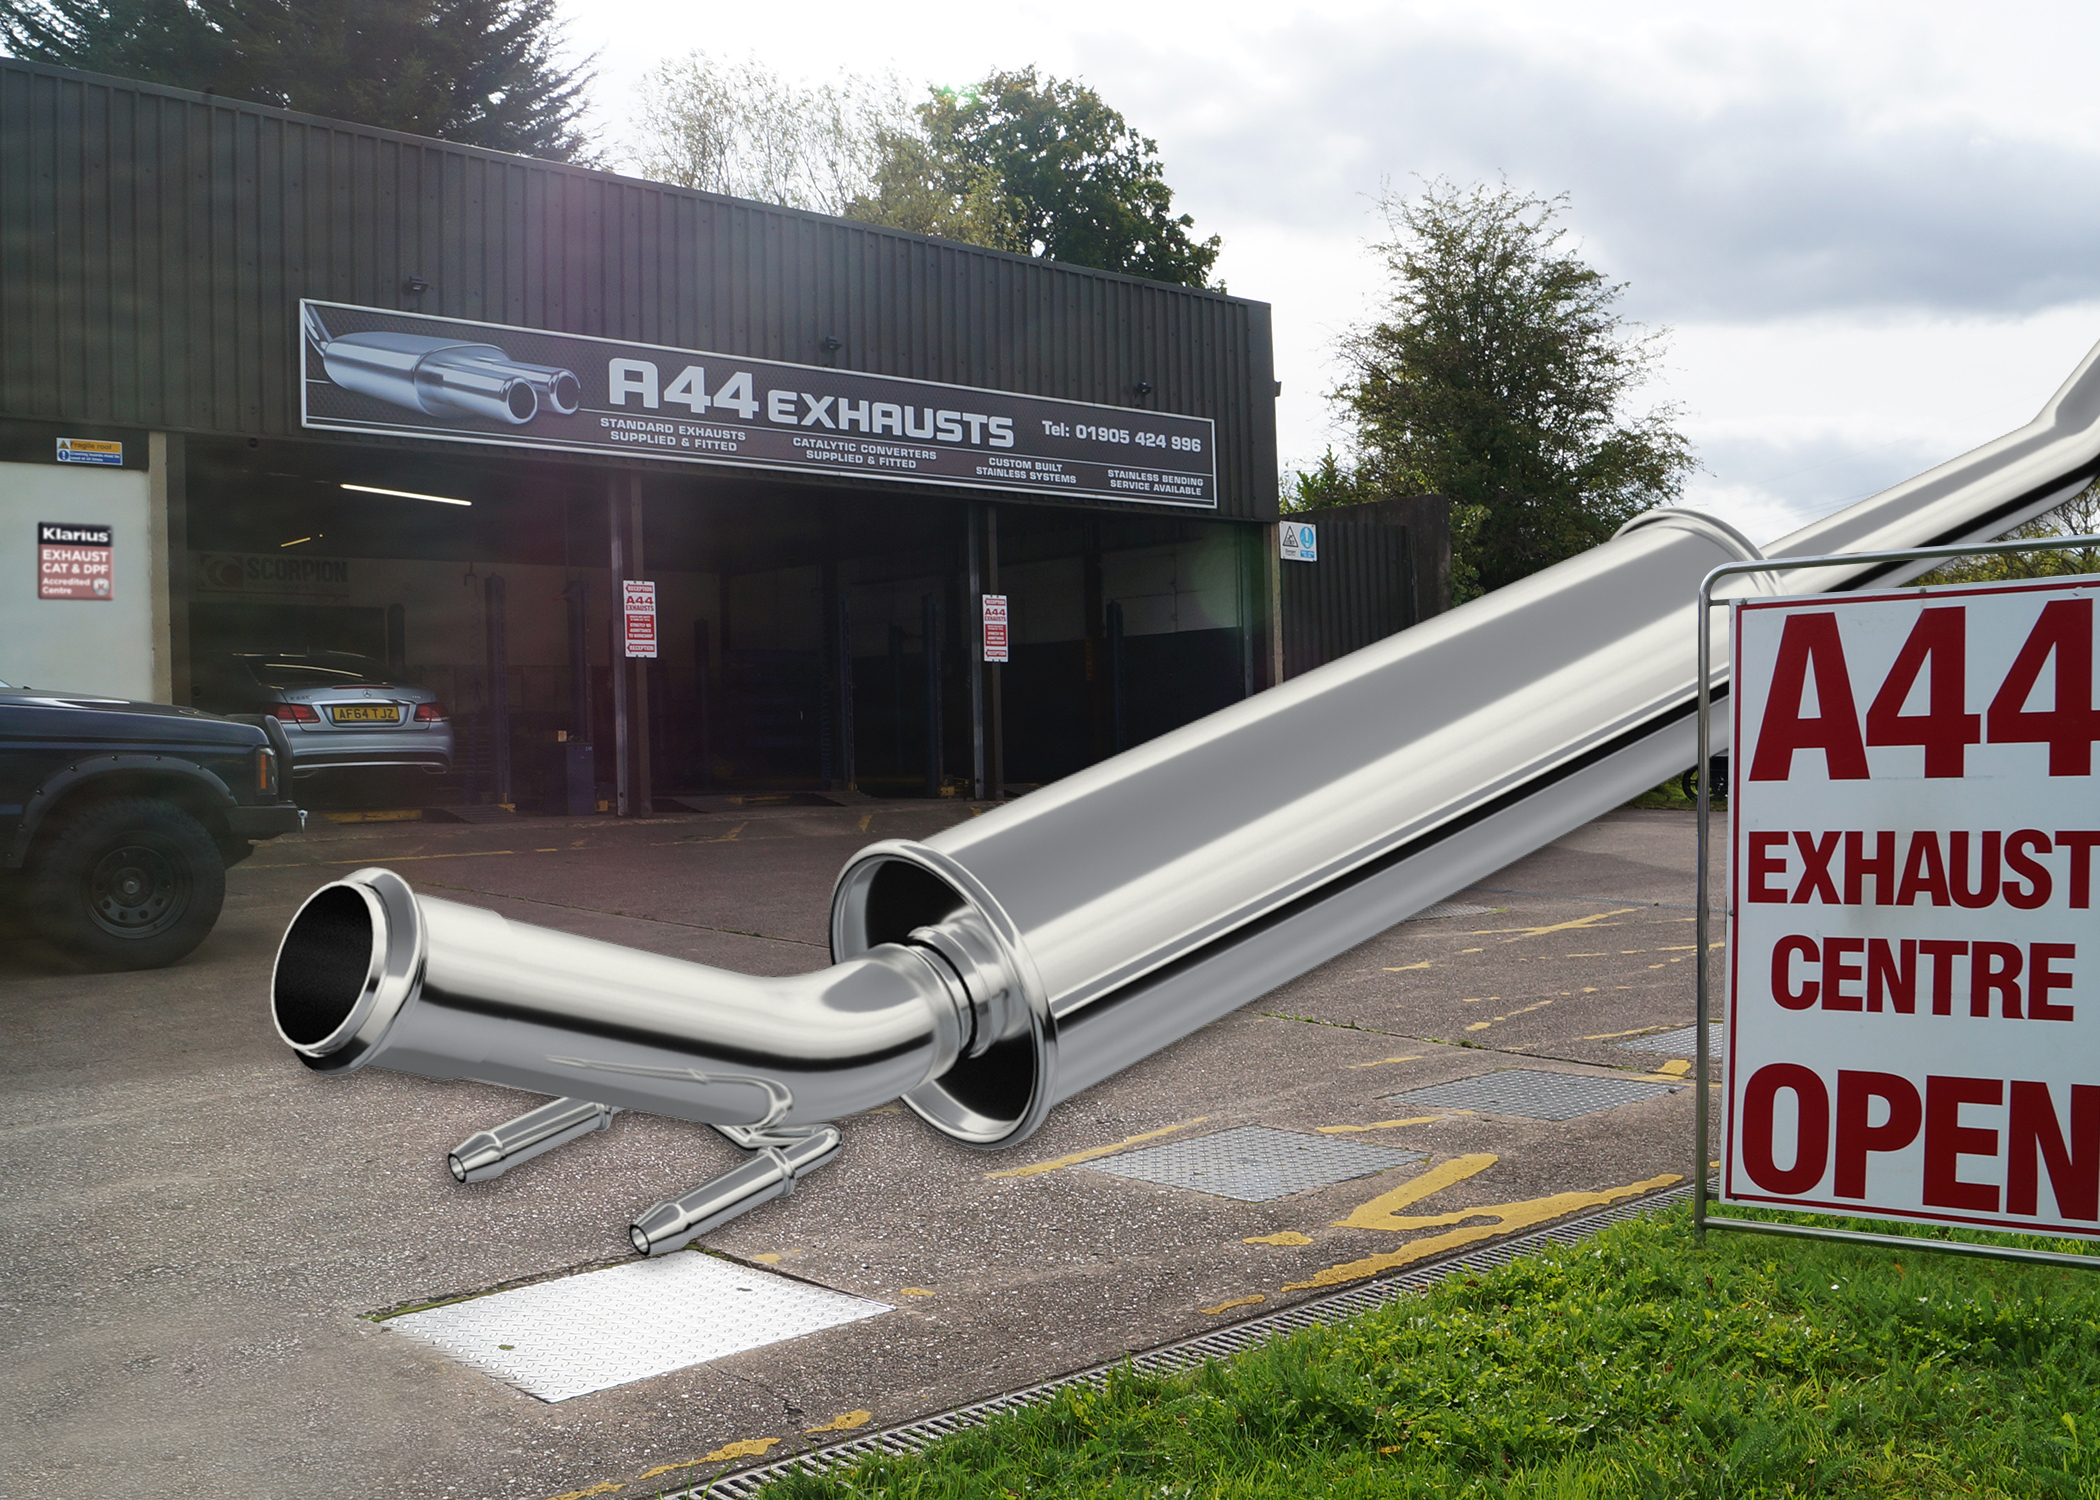 A44 Exhaust Centre teams up with Exhausts-Direct.net for emissions excellence